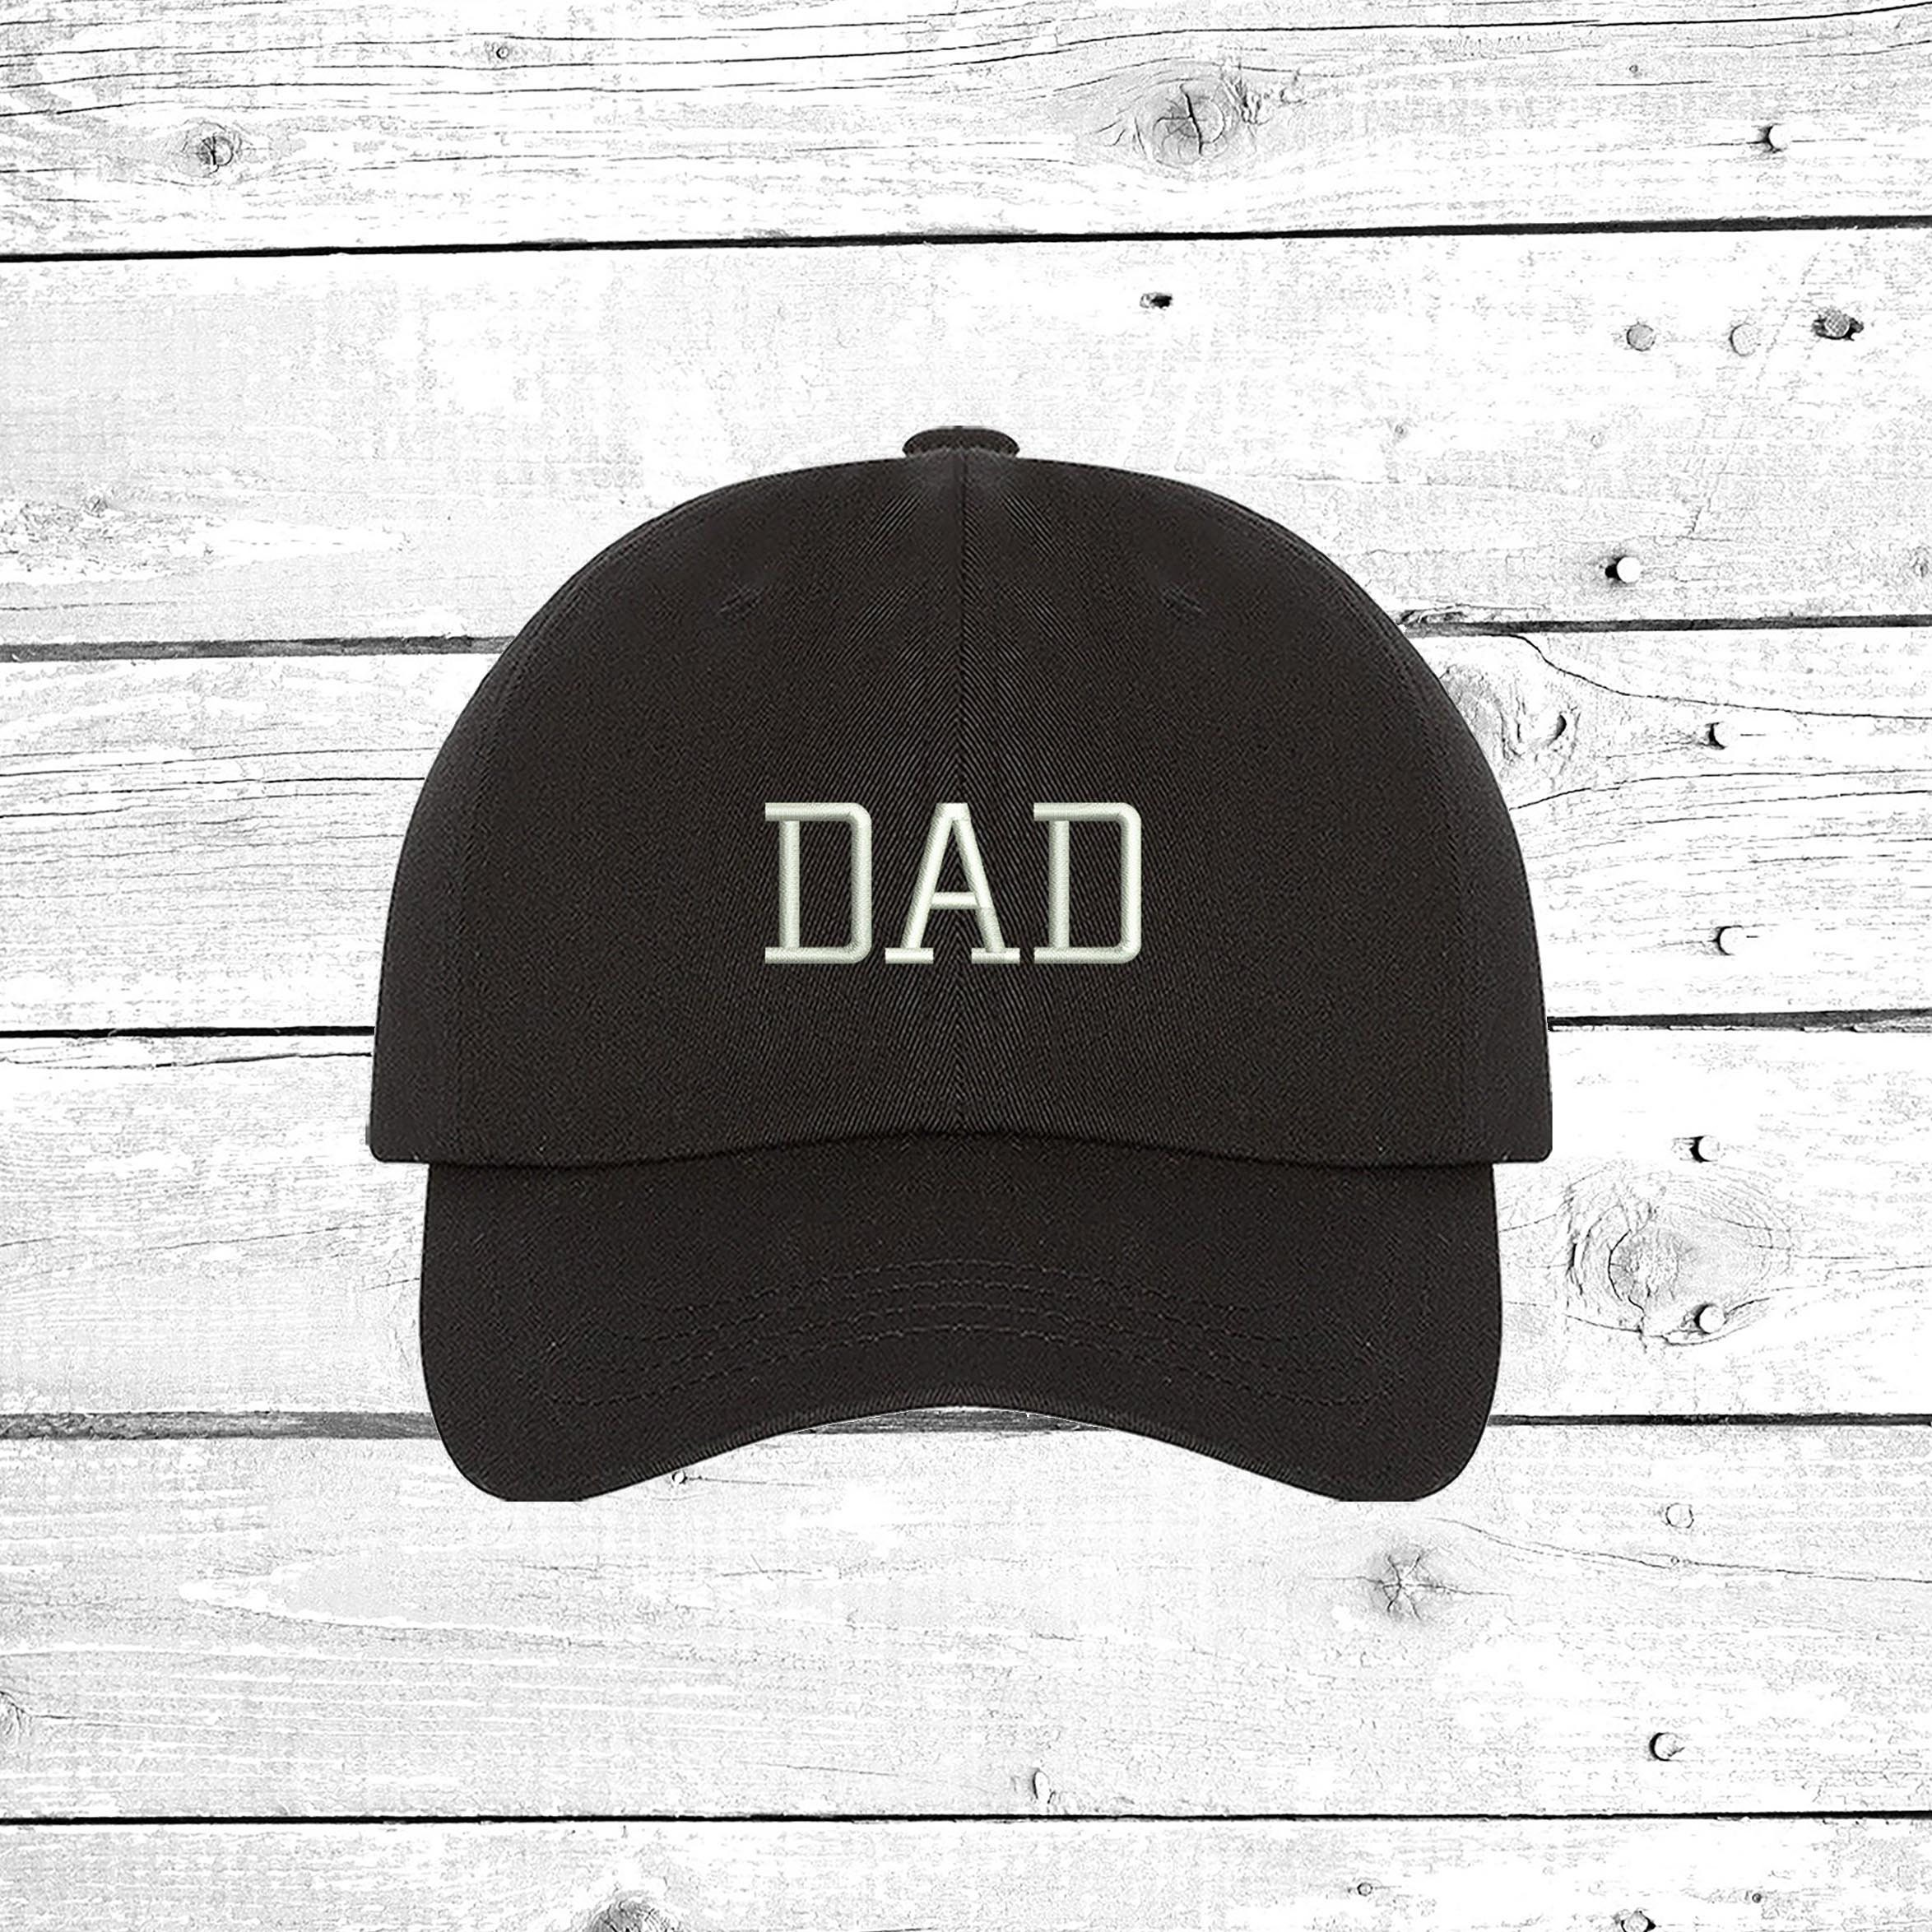 c4d5afe6c12 DAD Hat Dad Cap Papa Fathers Day Baseball Hat